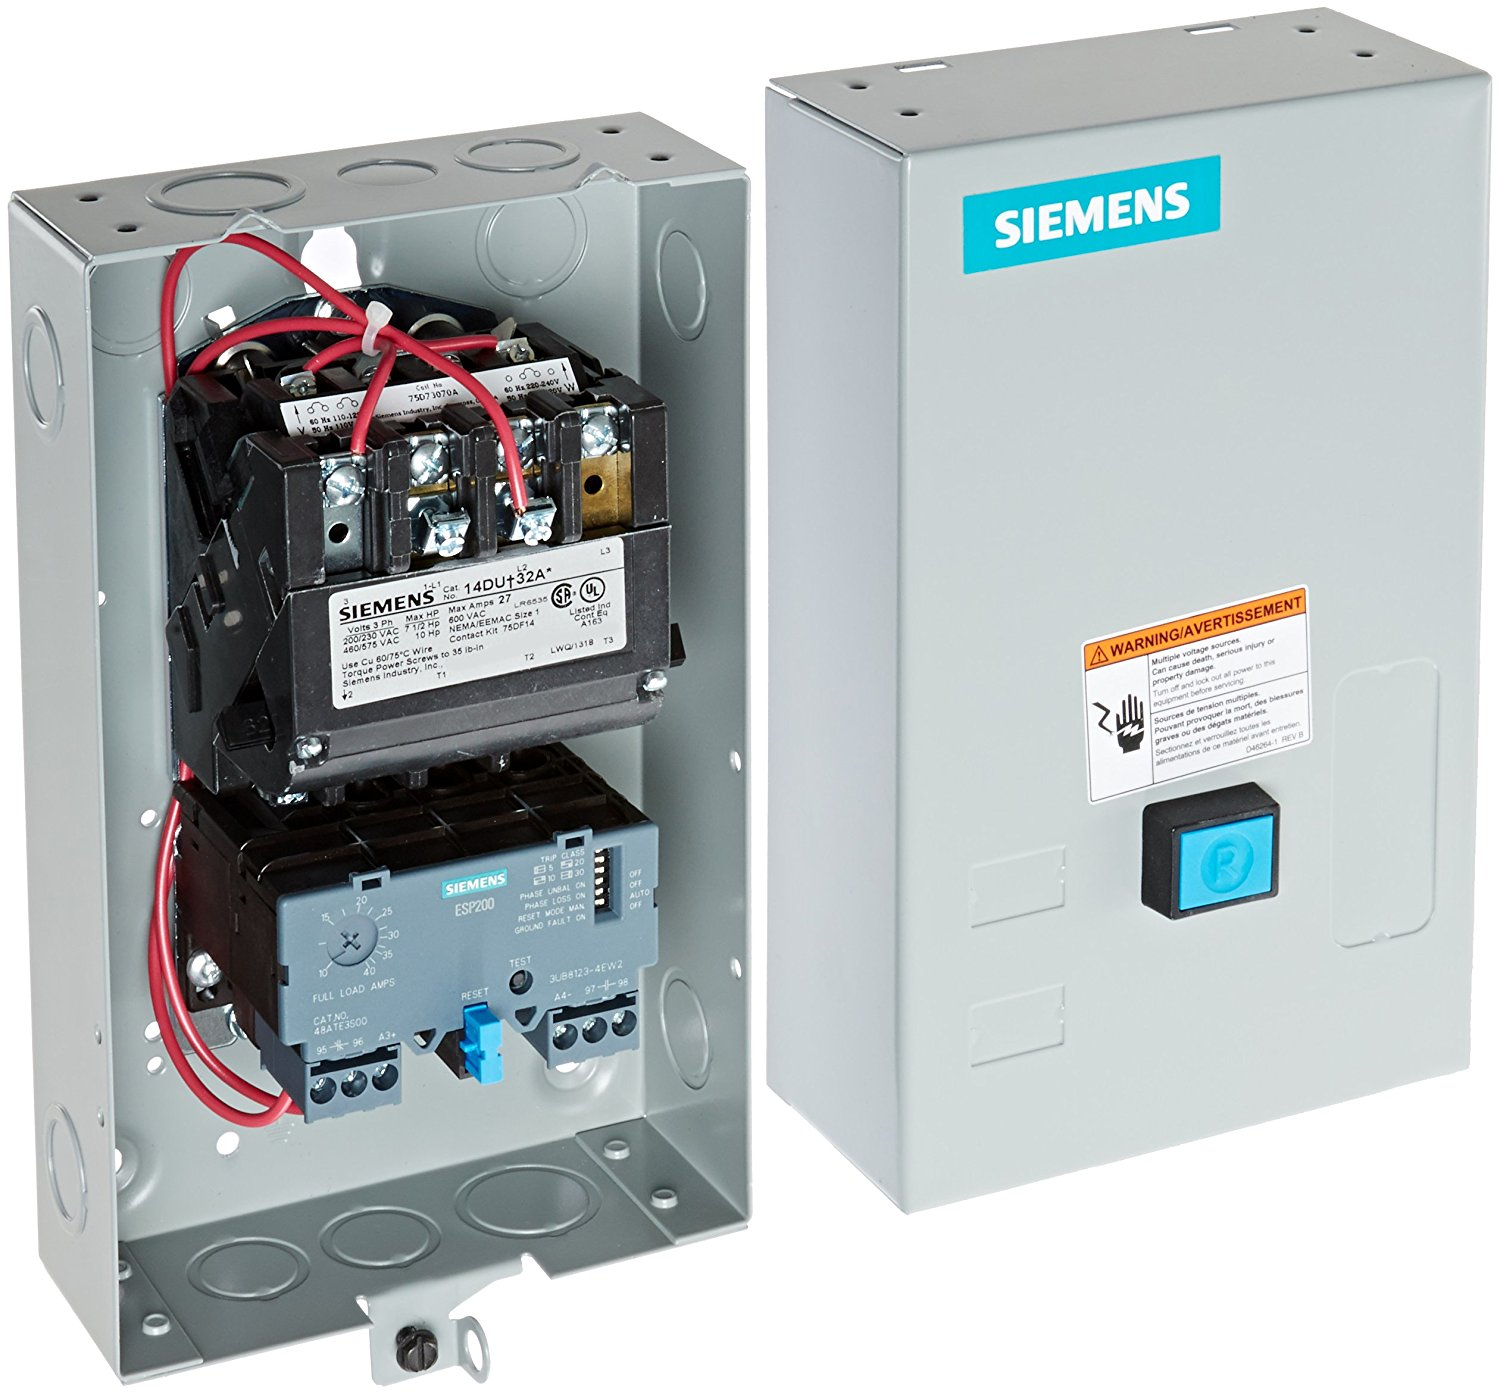 Siemens Esp200 Wiring Diagram Magnetic Starter Famous Image